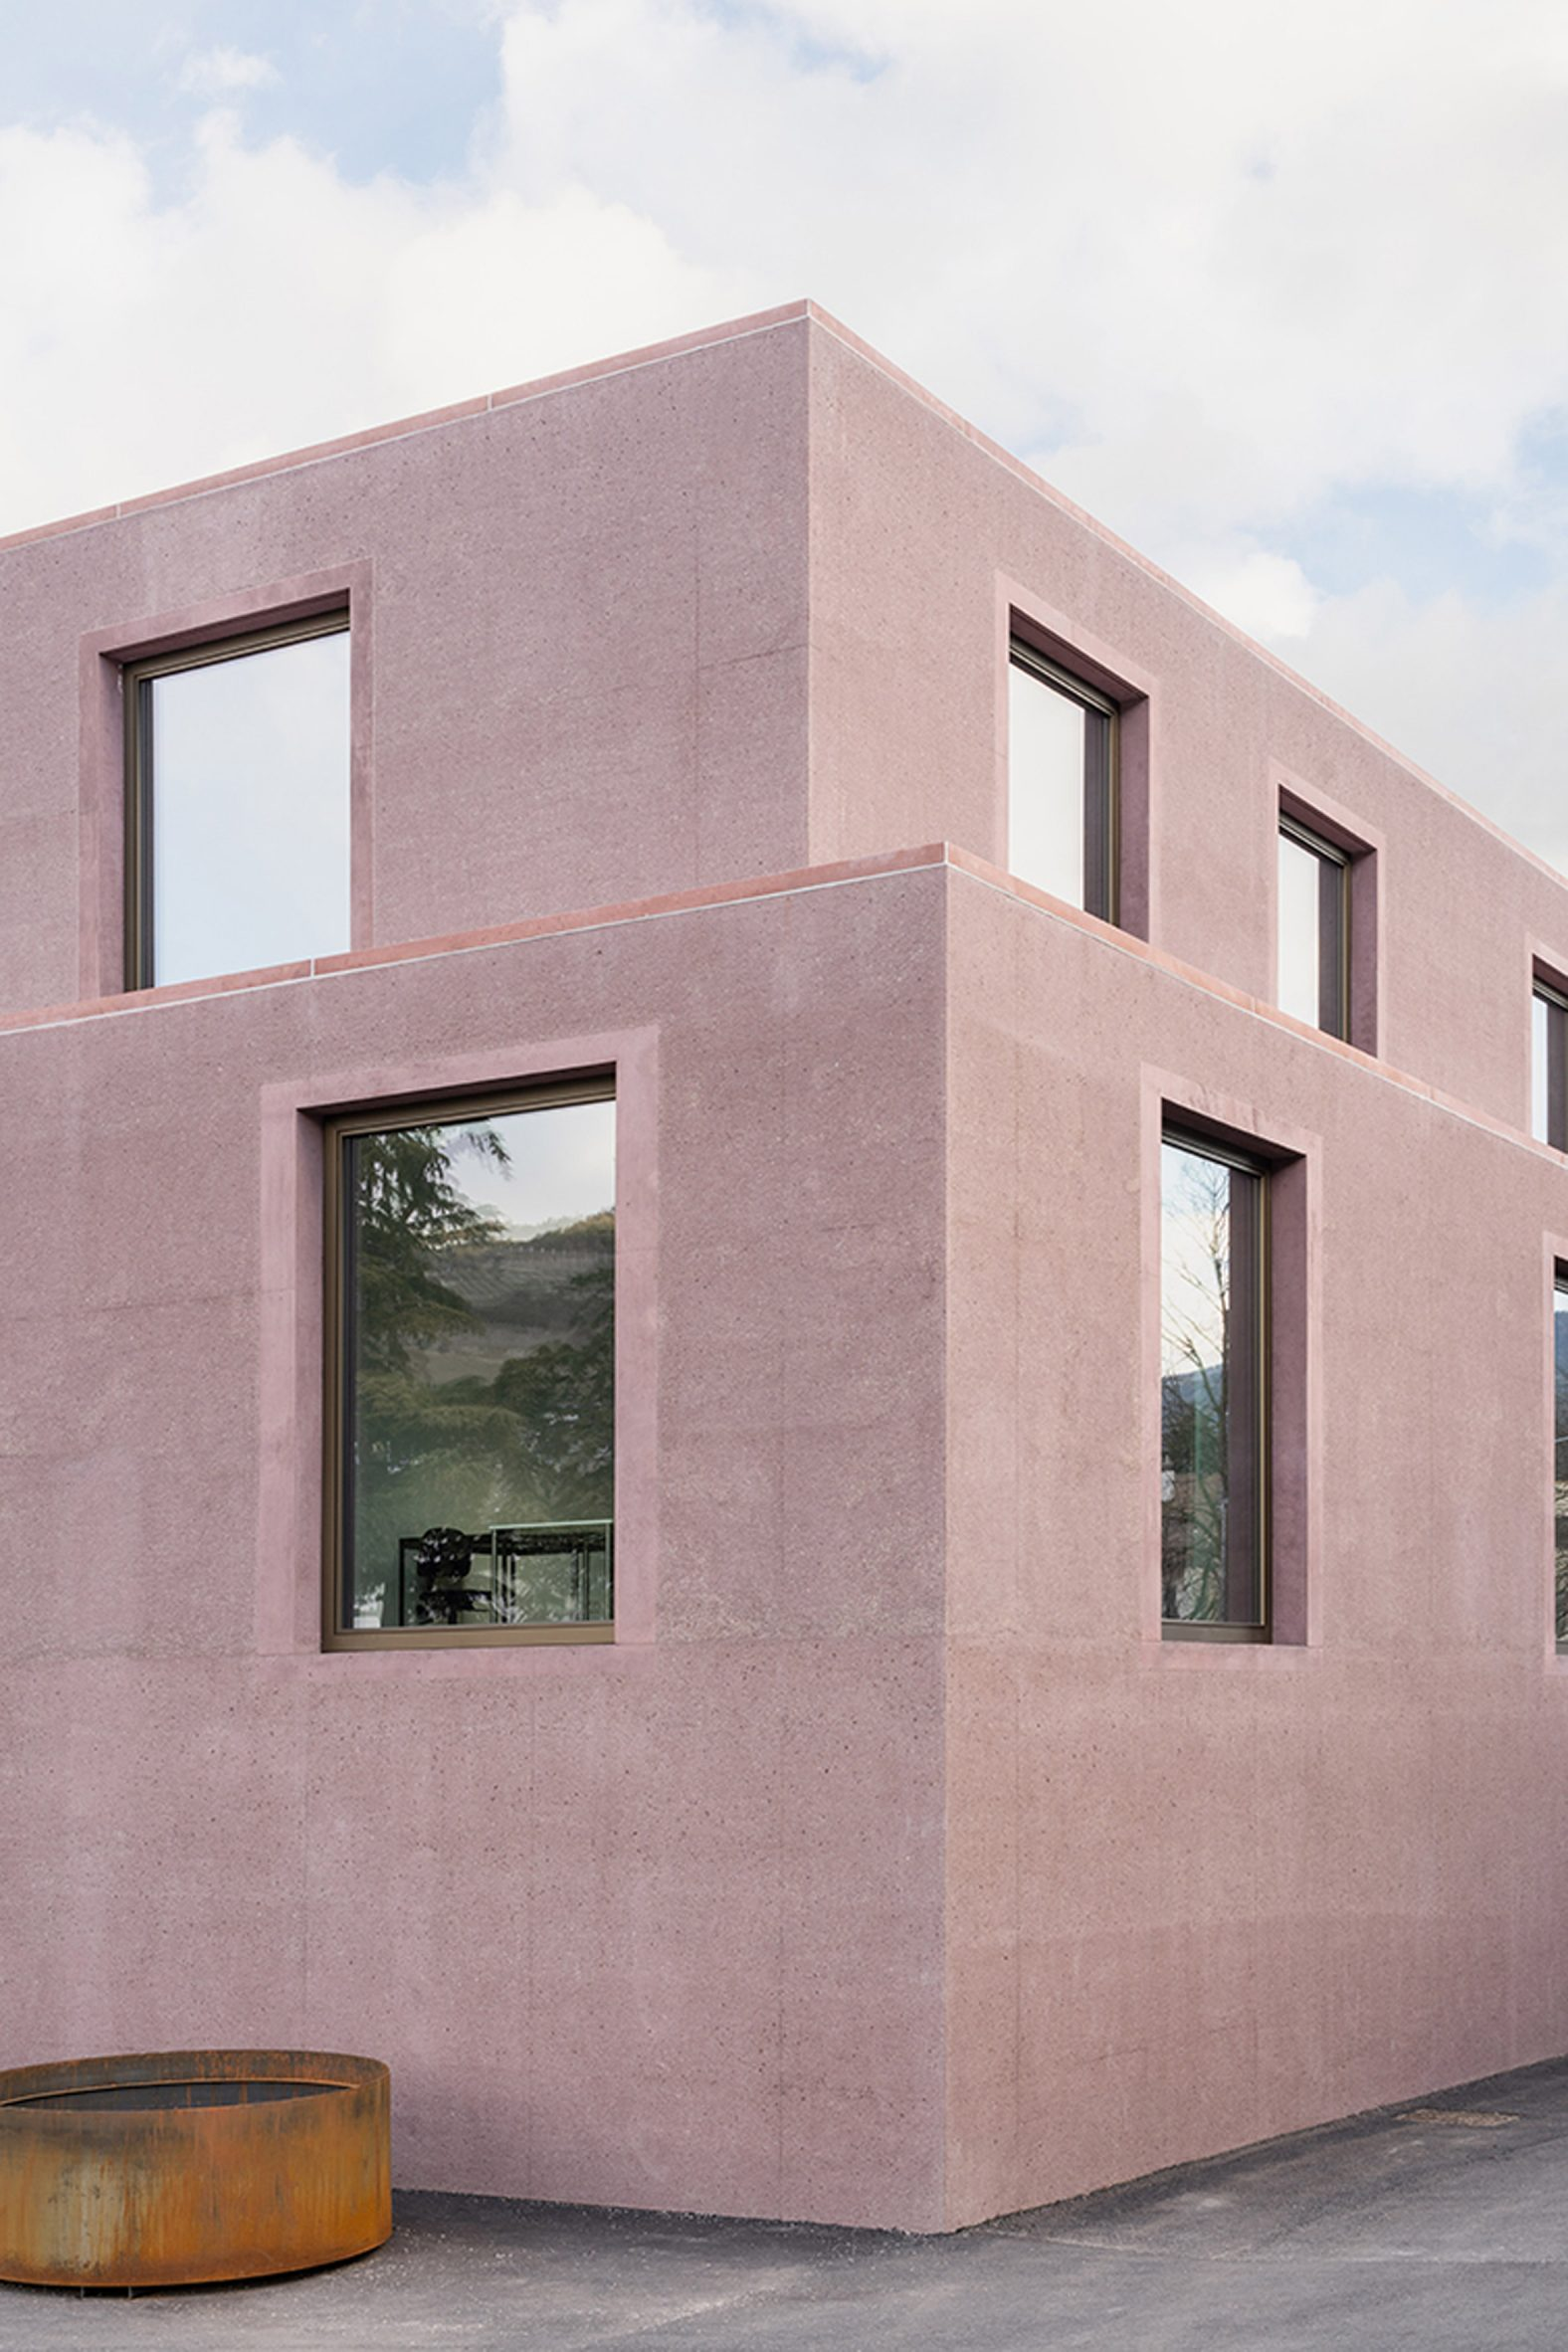 Dusty pink concrete volumes at the school building